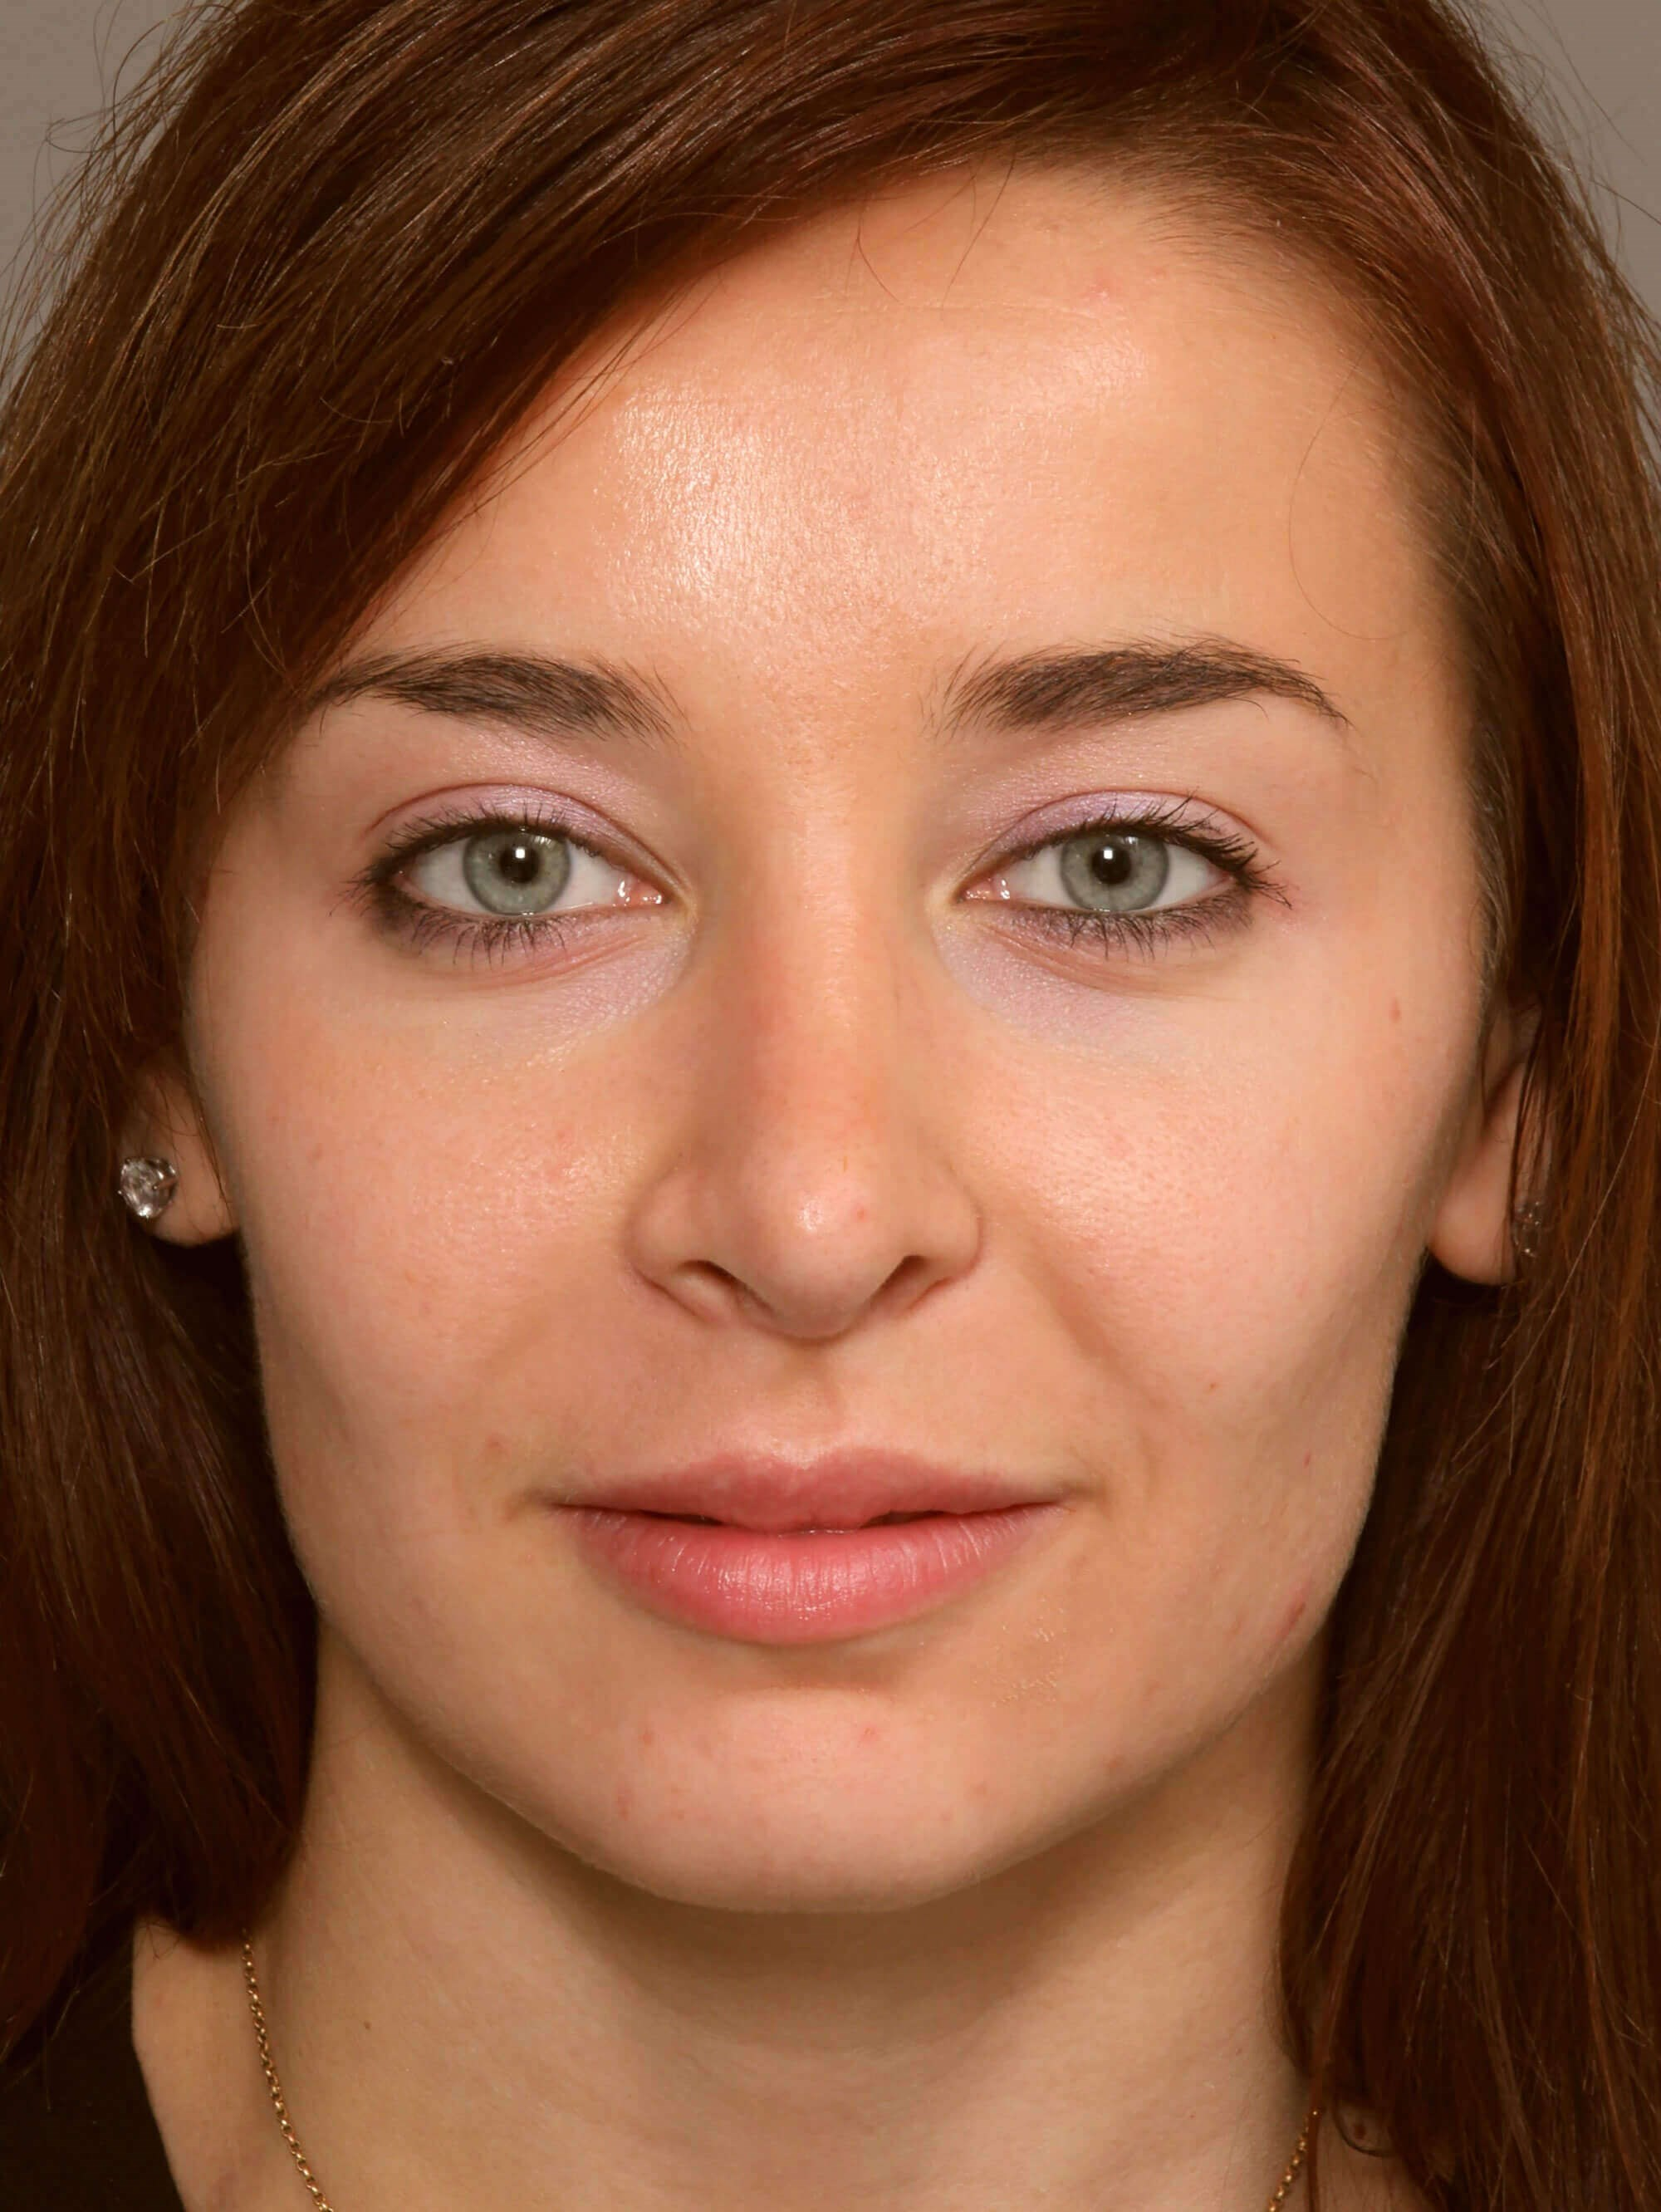 Rhinoplasty procedure performed on White Female Patient from